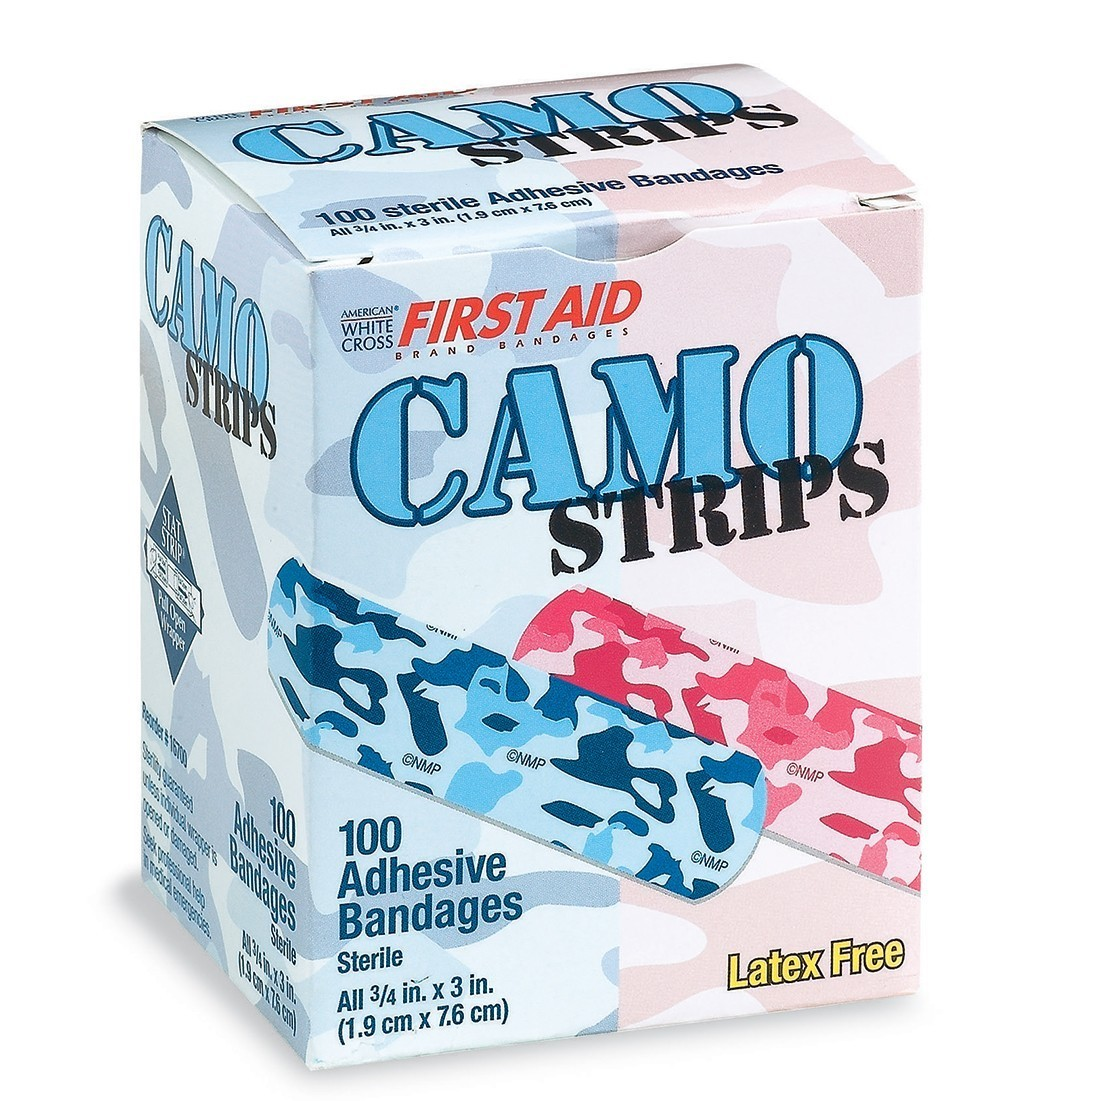 First Aid Case Blue/Pink Camouflage Bandages [image]